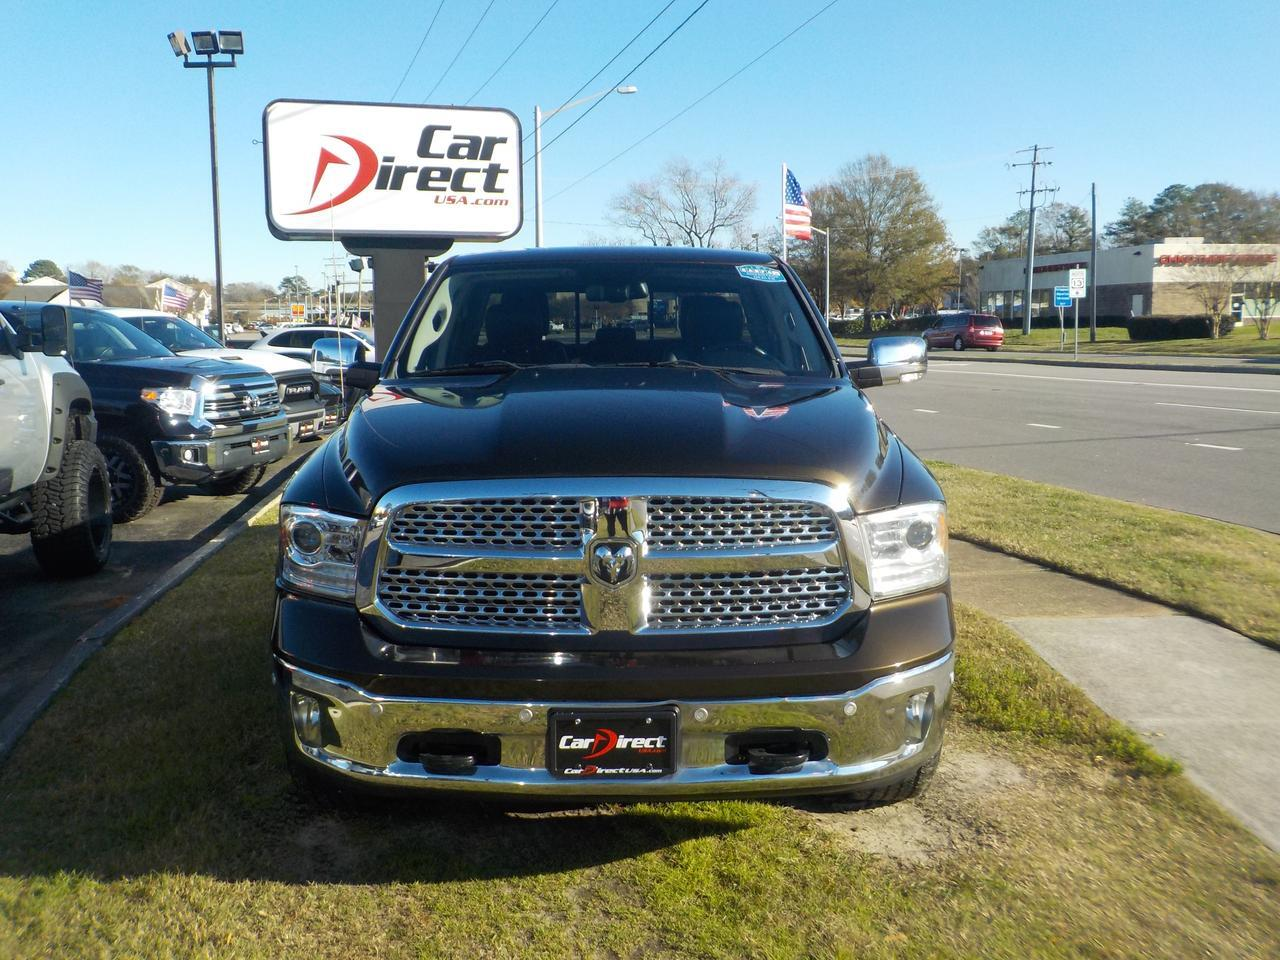 2014 DODGE RAM 1500 LARAMIE QUAD CAB 4X4, LEATHER, REMOTE START, BACKUP CAMERA, TOW PACKAGE, BLUETOOTH, EXTRA CLEAN! Virginia Beach VA